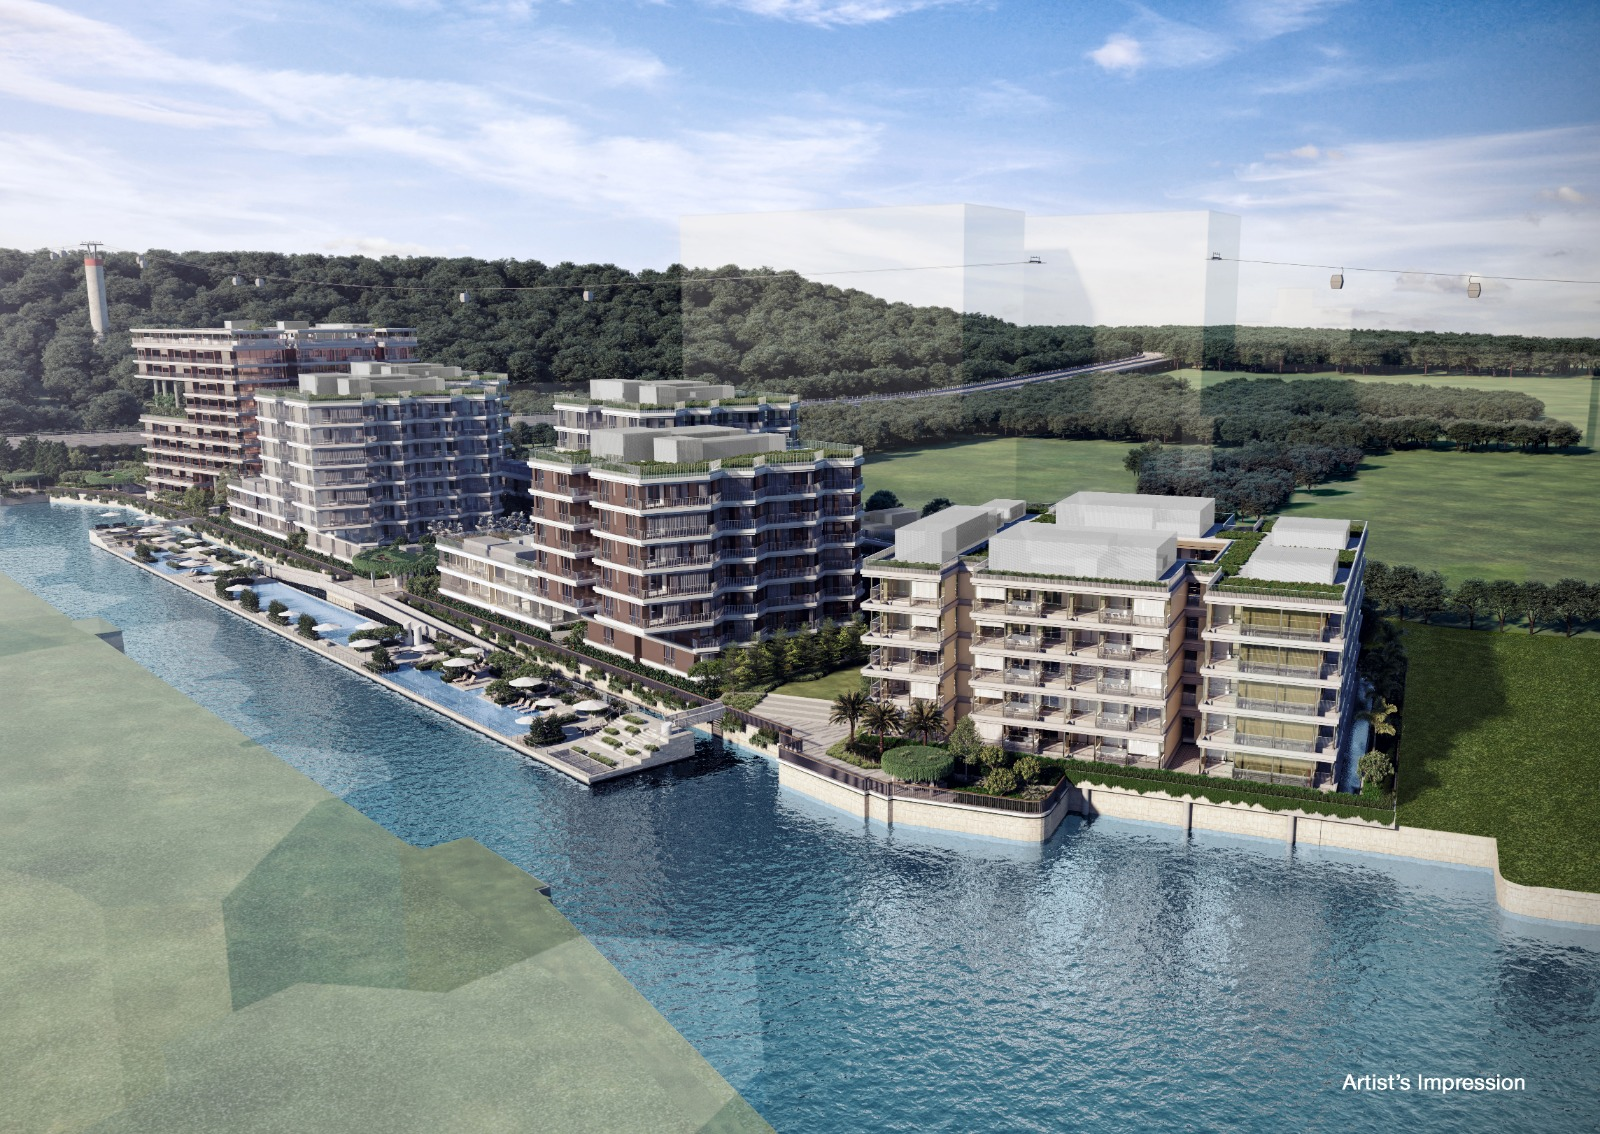 The Reef At King's Dock The Offer The Luxury Waterfront Living